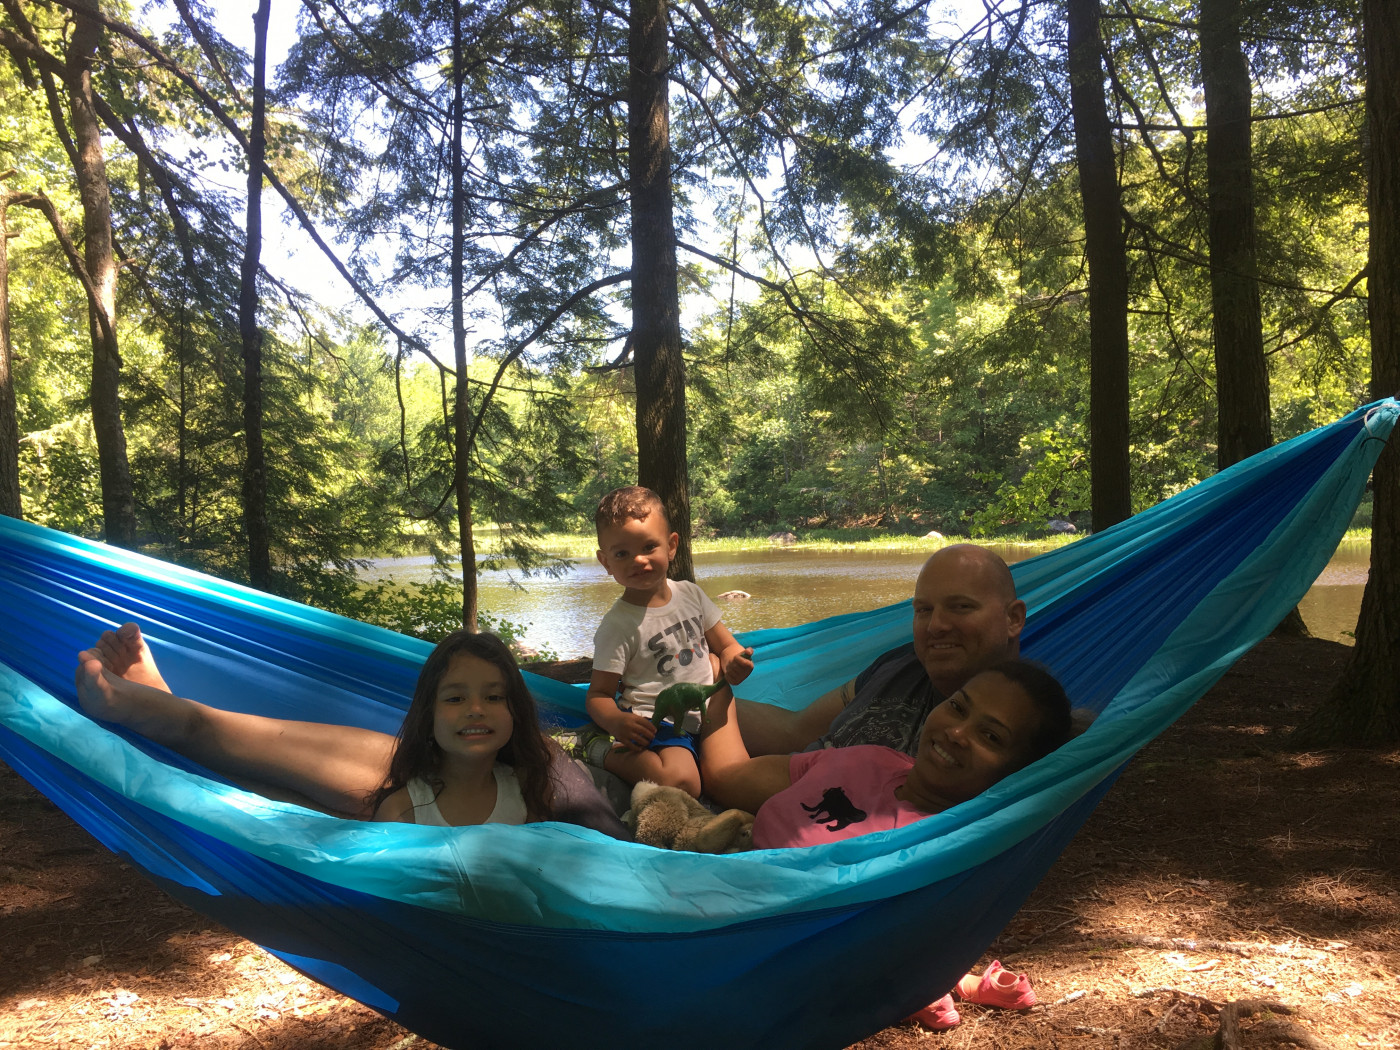 Relaxing in a hammock at Lewey Lake Campground